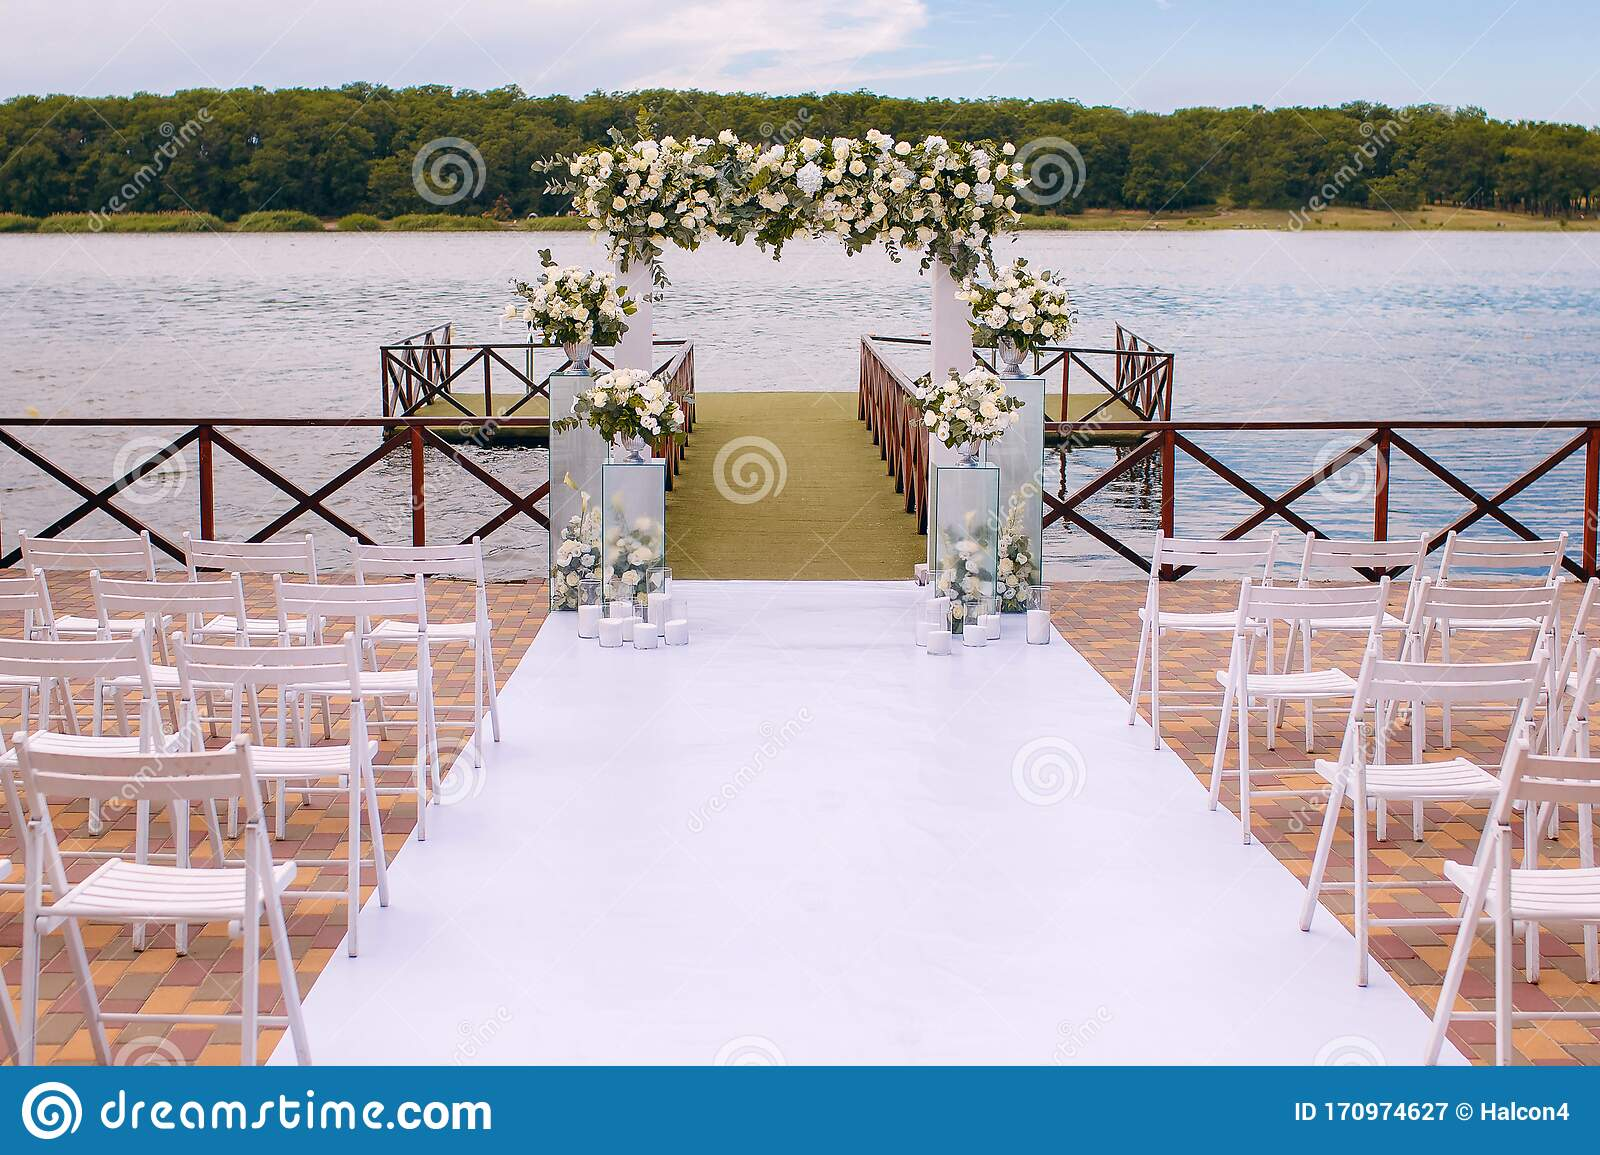 Wedding Ceremony Wedding Arch Wedding Arch Made Of Branches Flowers And Greenery Is On The Green Grass On The River Bank Stock Image Image Of Cotton Date 170974627